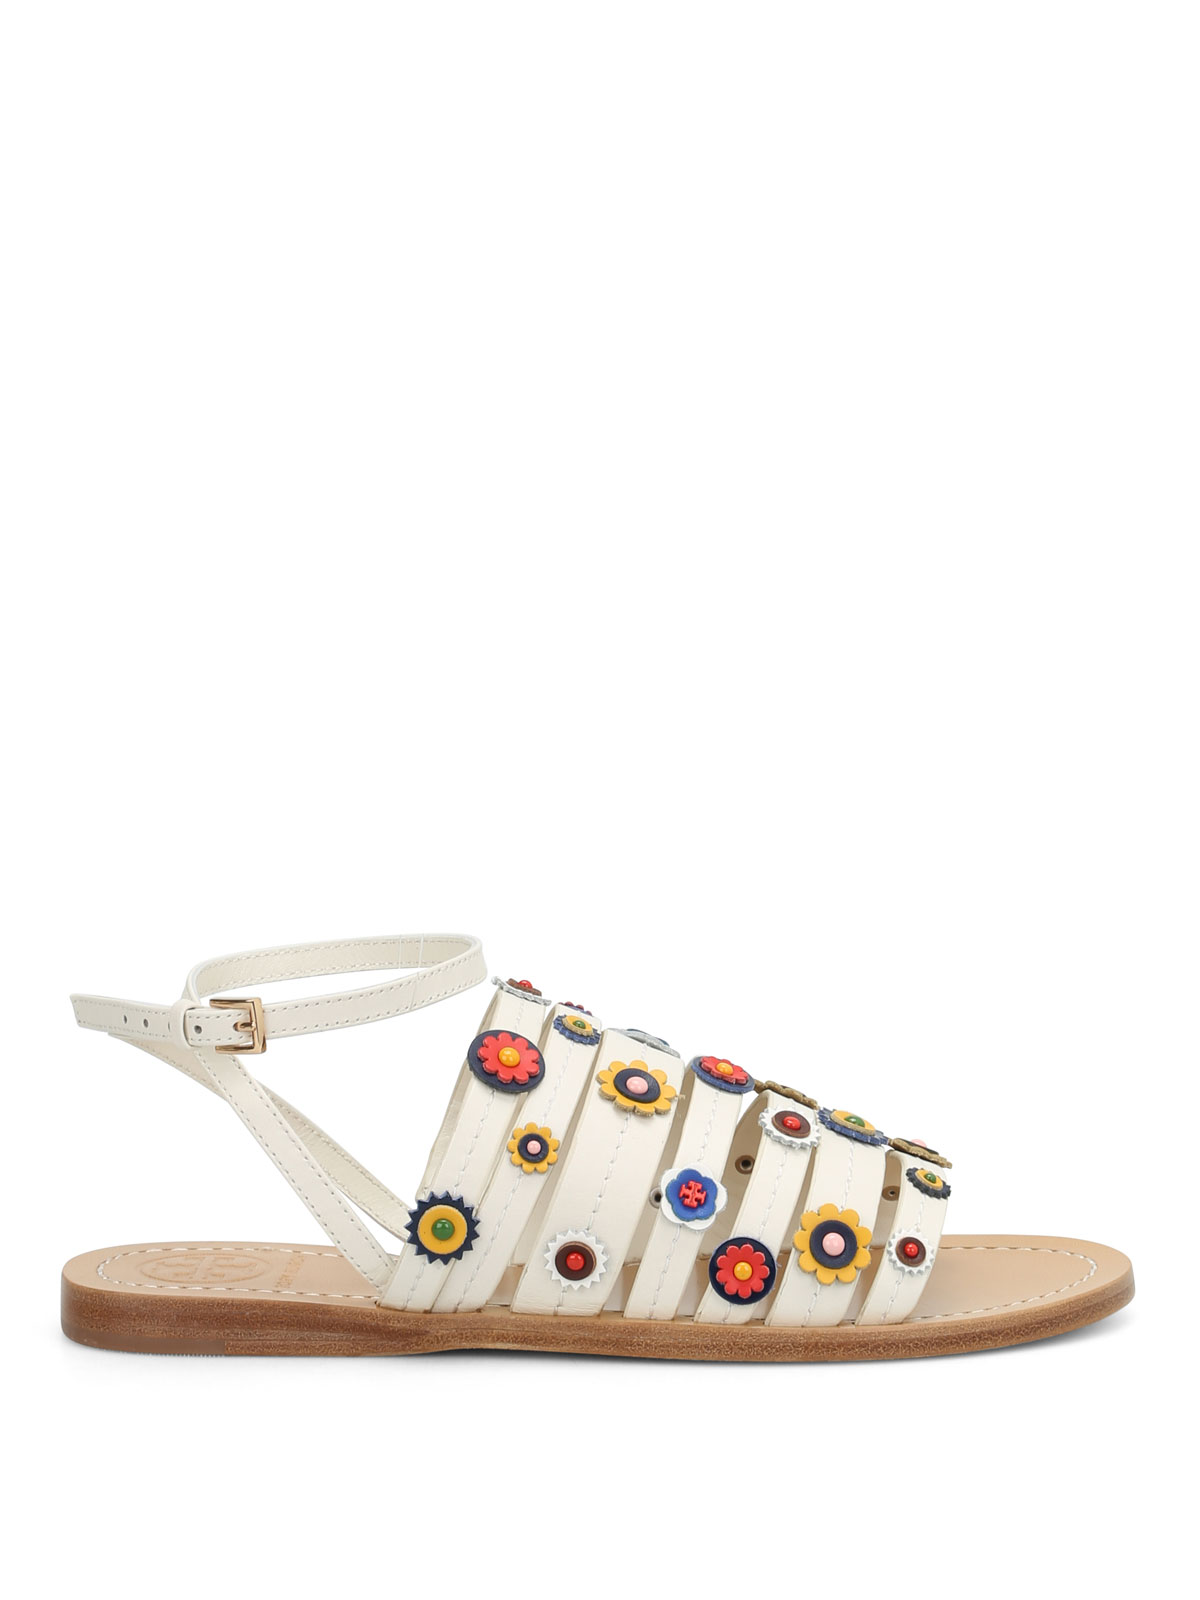 Marguerite Flat Sandals By Tory Burch - Sandals | IKRIX